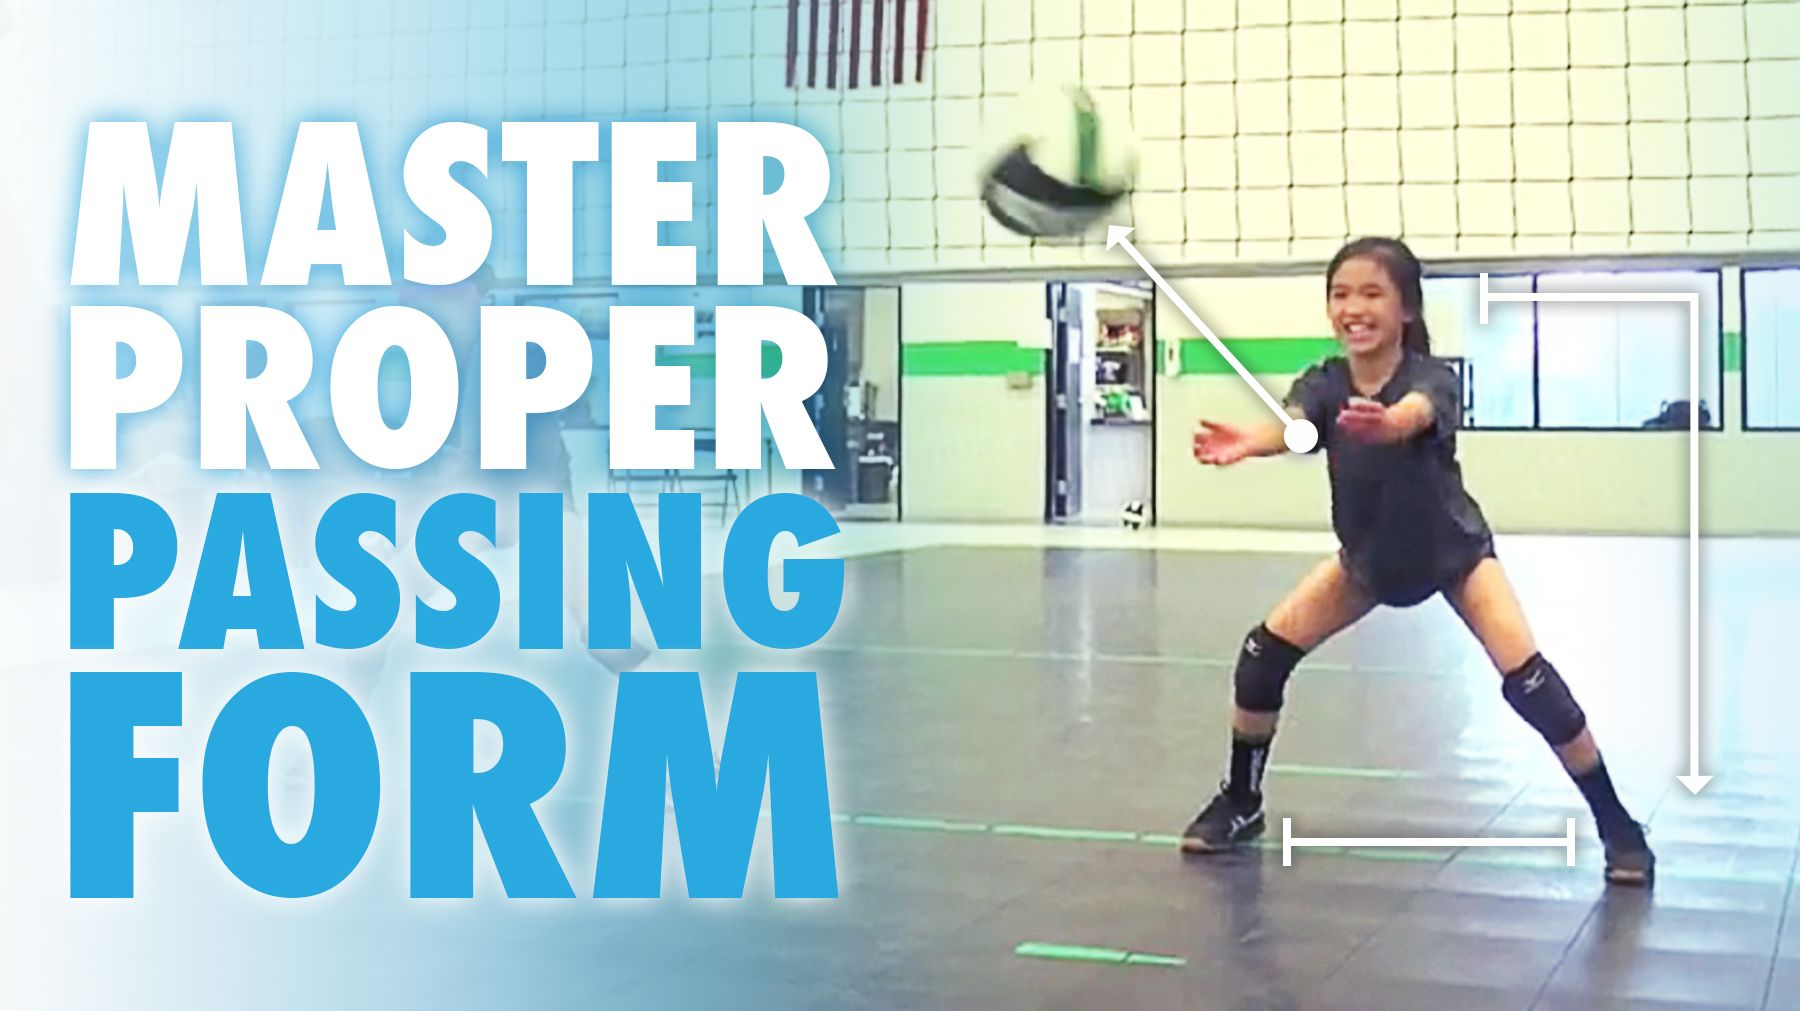 Training Beginners To Master Proper Passing Form Coaching Volleyball Volleyball Drills For Beginners Volleyball Skills